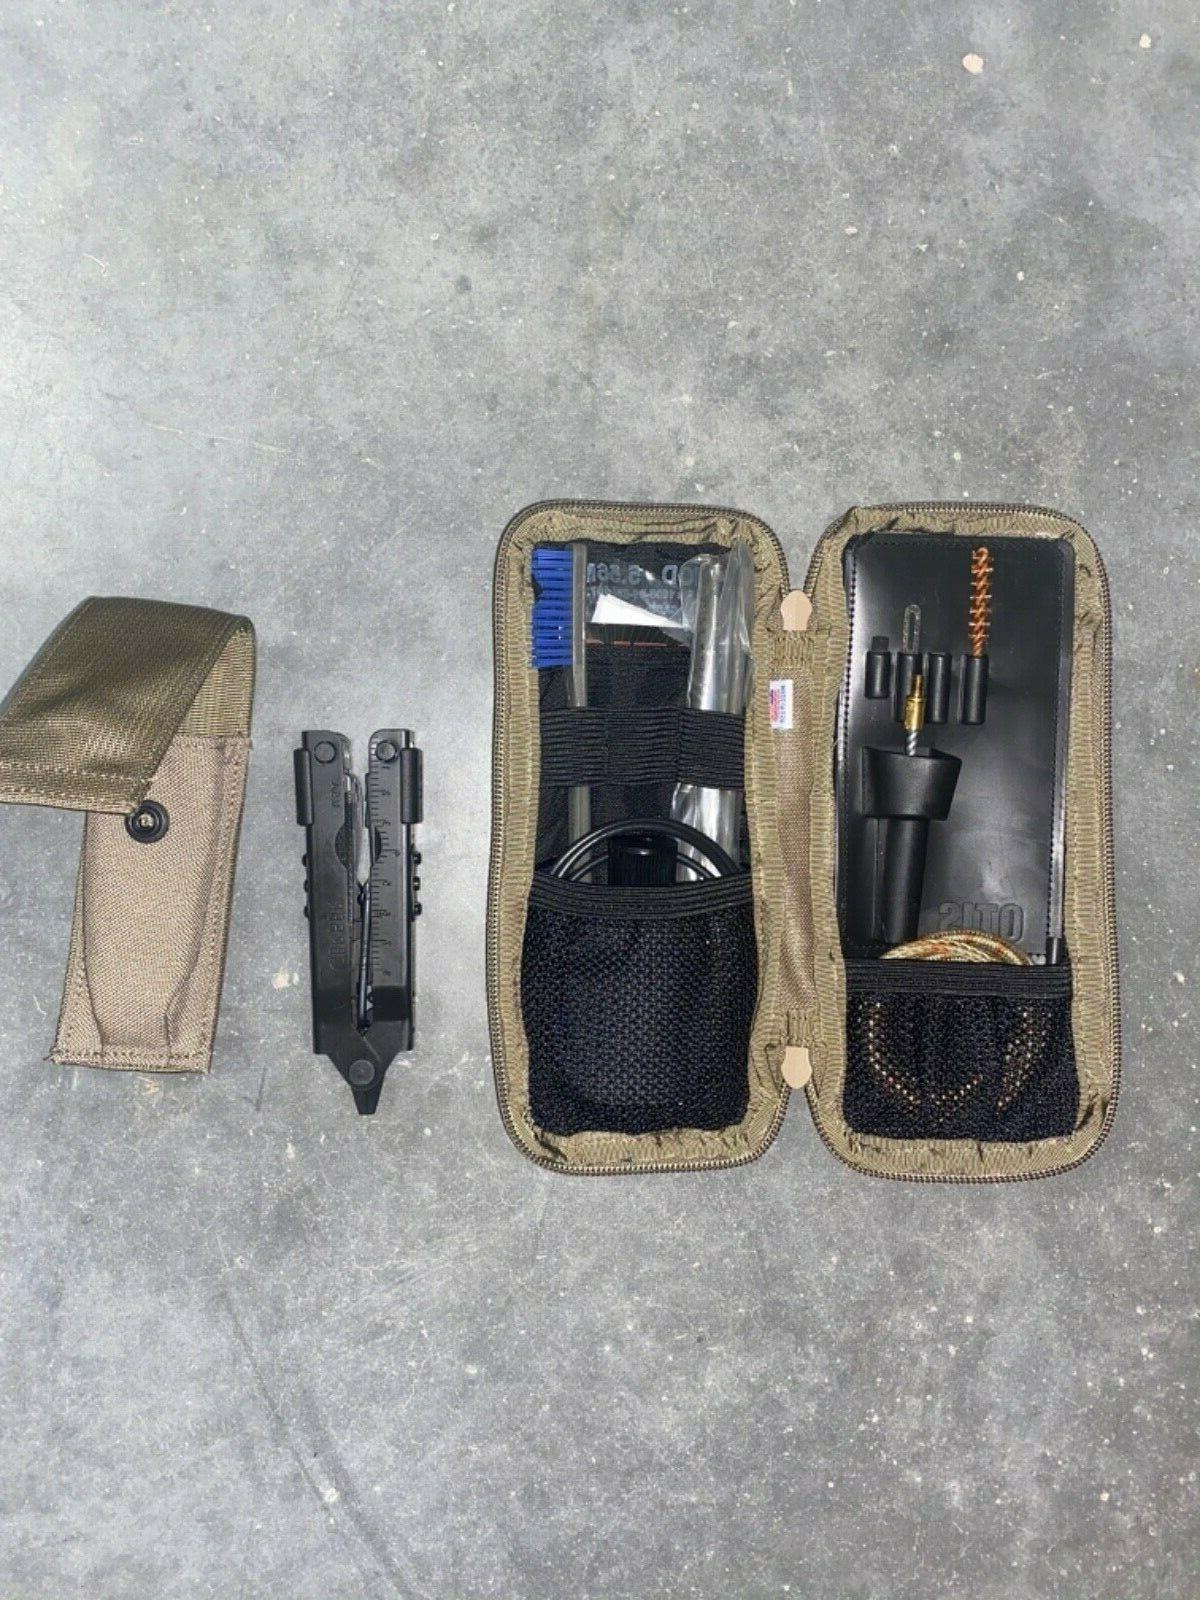 NEW Cleaning Coyote Pouch | OTIS I MOD 5.56mm +multi-tool